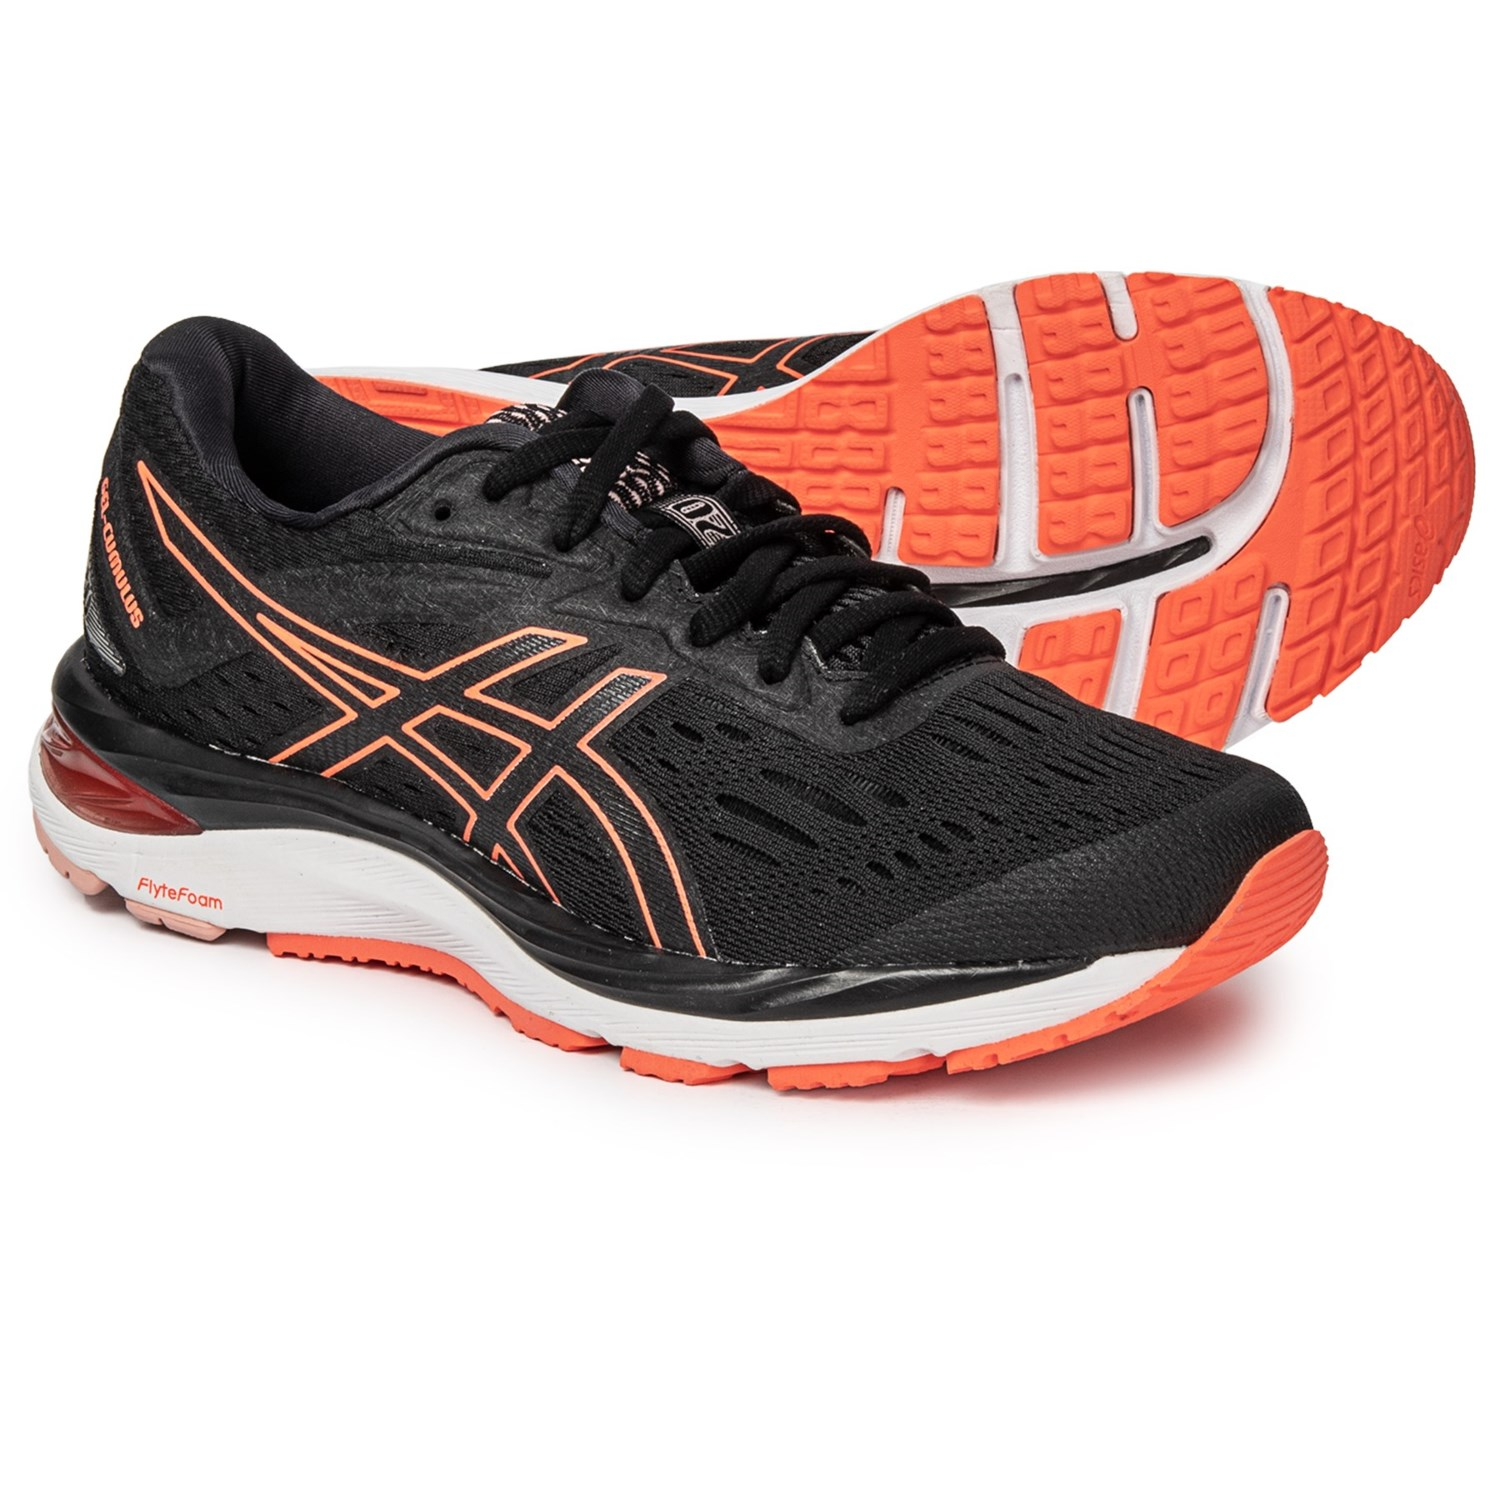 a28548fc1b ASICS GEL-Cumulus 20 Running Shoes (For Women)